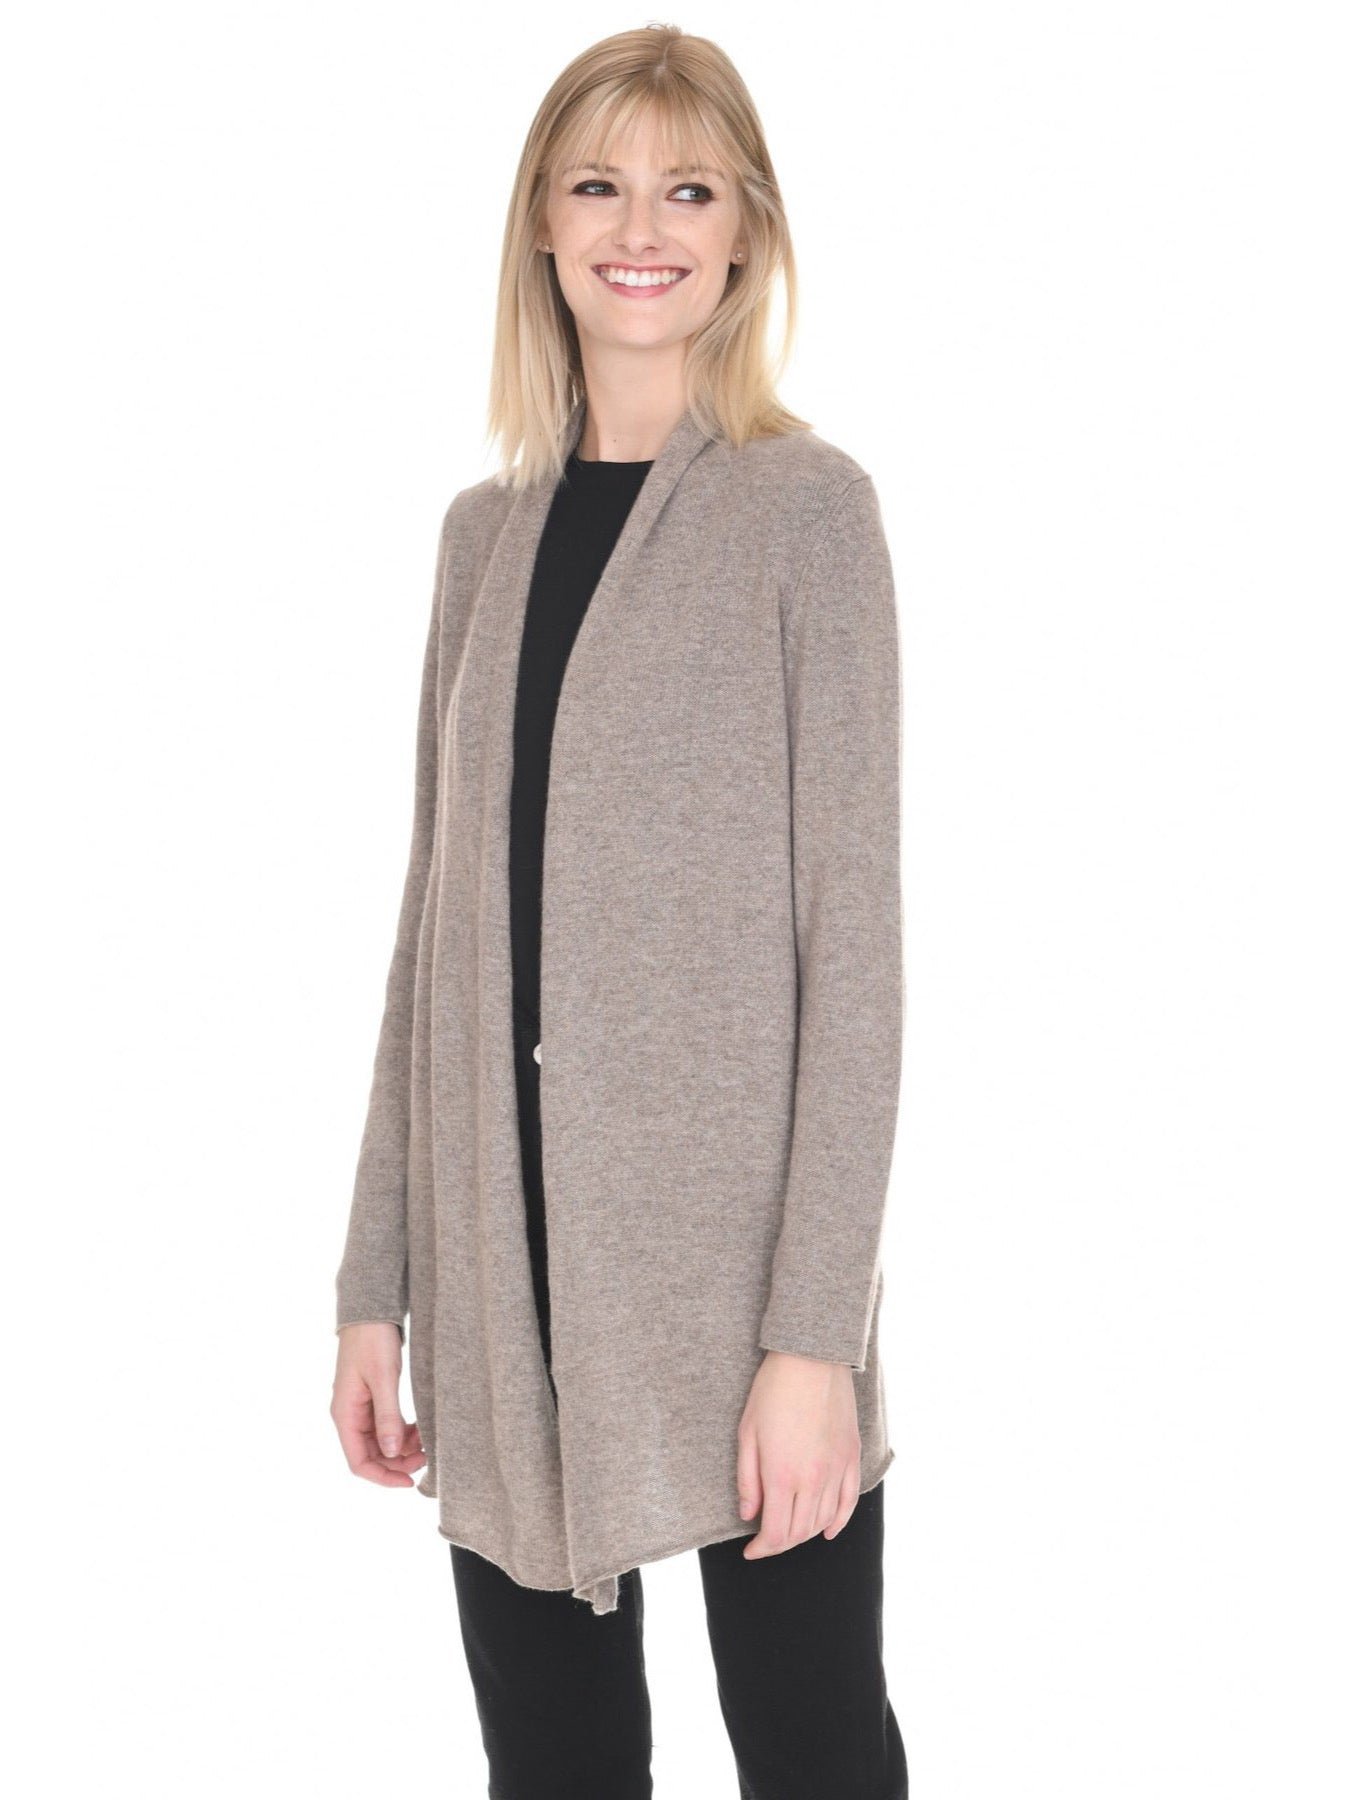 Heather Almond Cashmere Cardigan